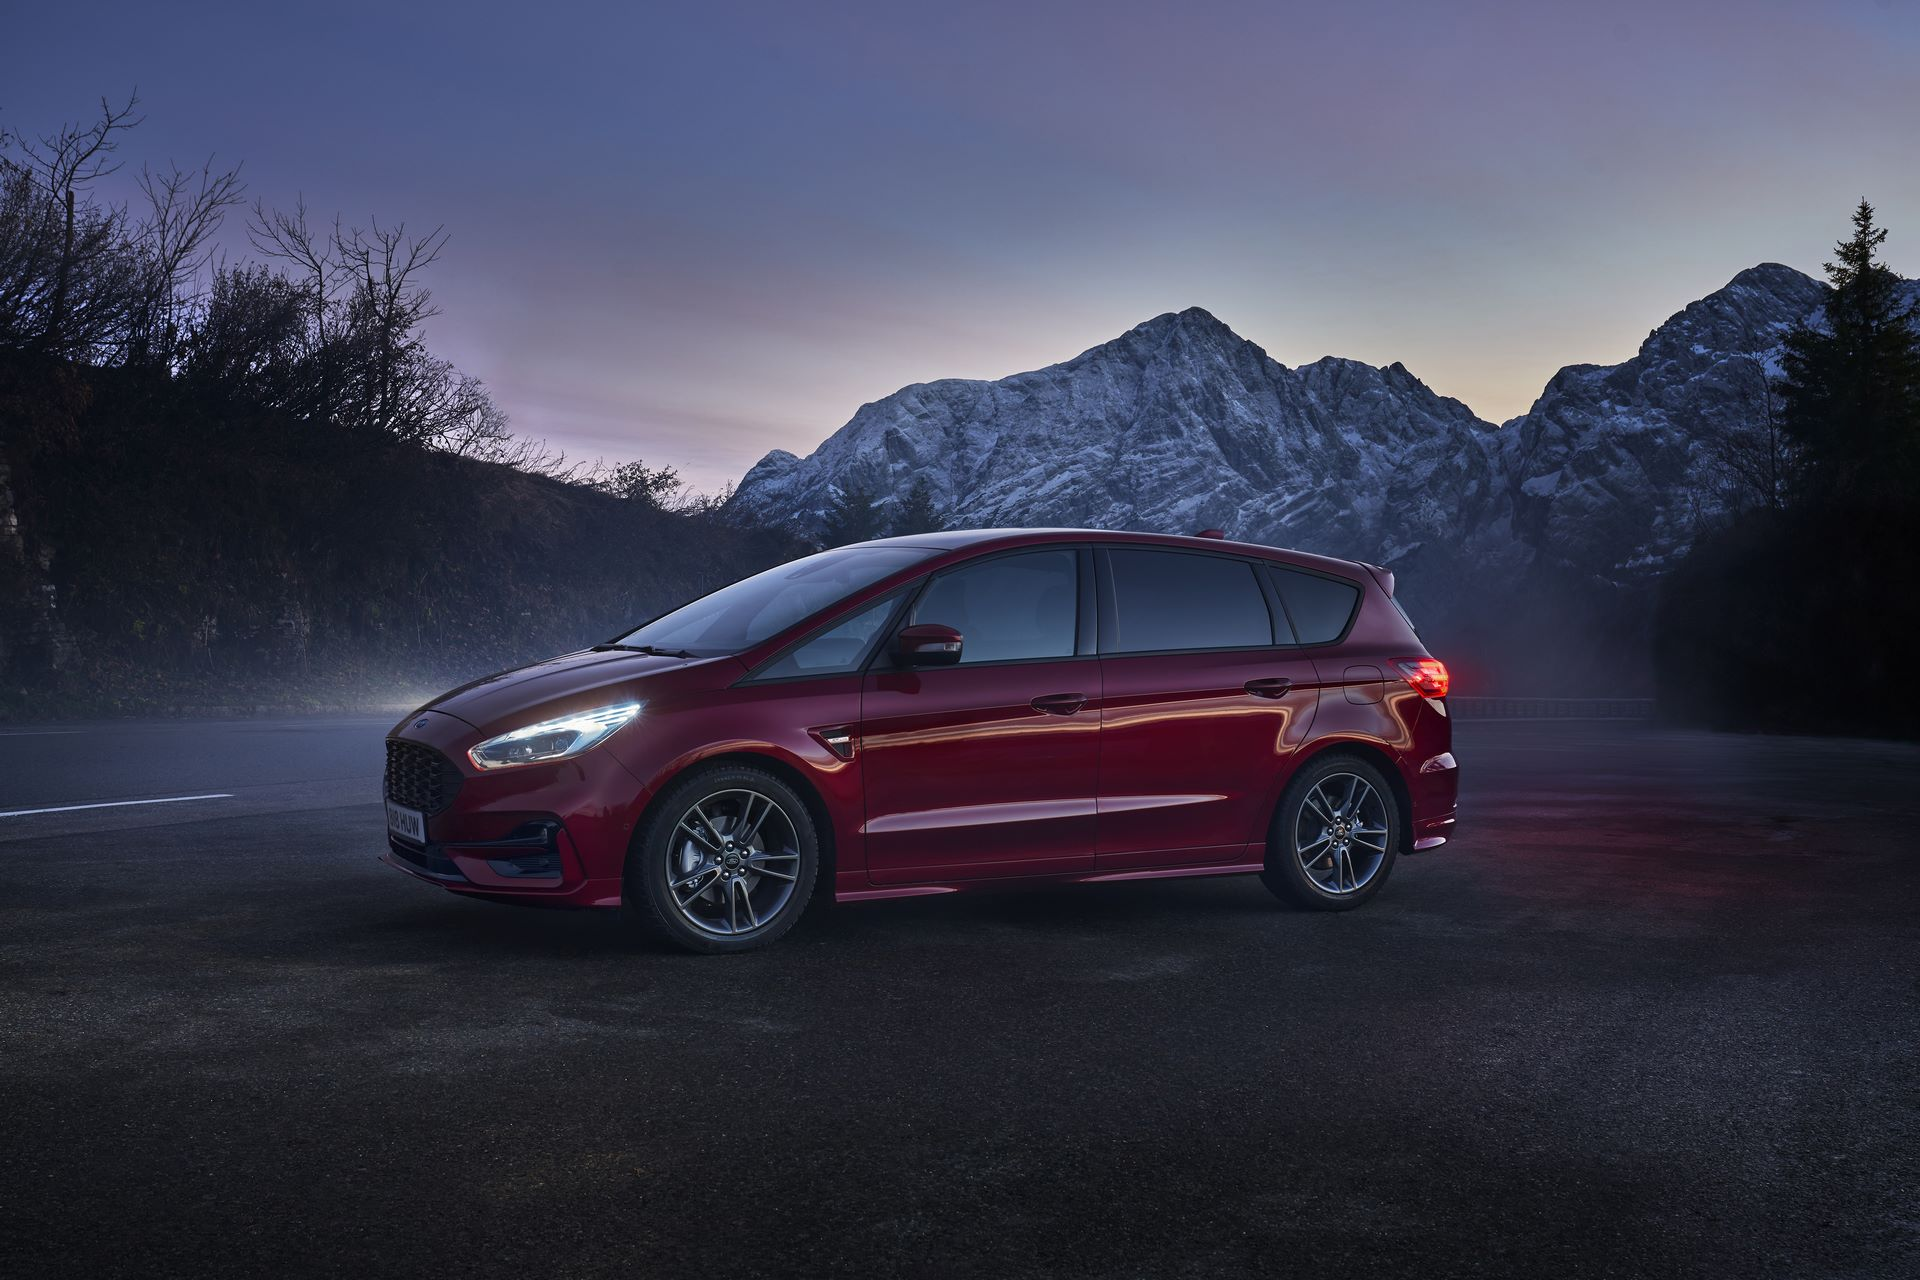 New S-MAX Hybrid Helps Active Families Go Electric and Continues Ford's Electrification Push